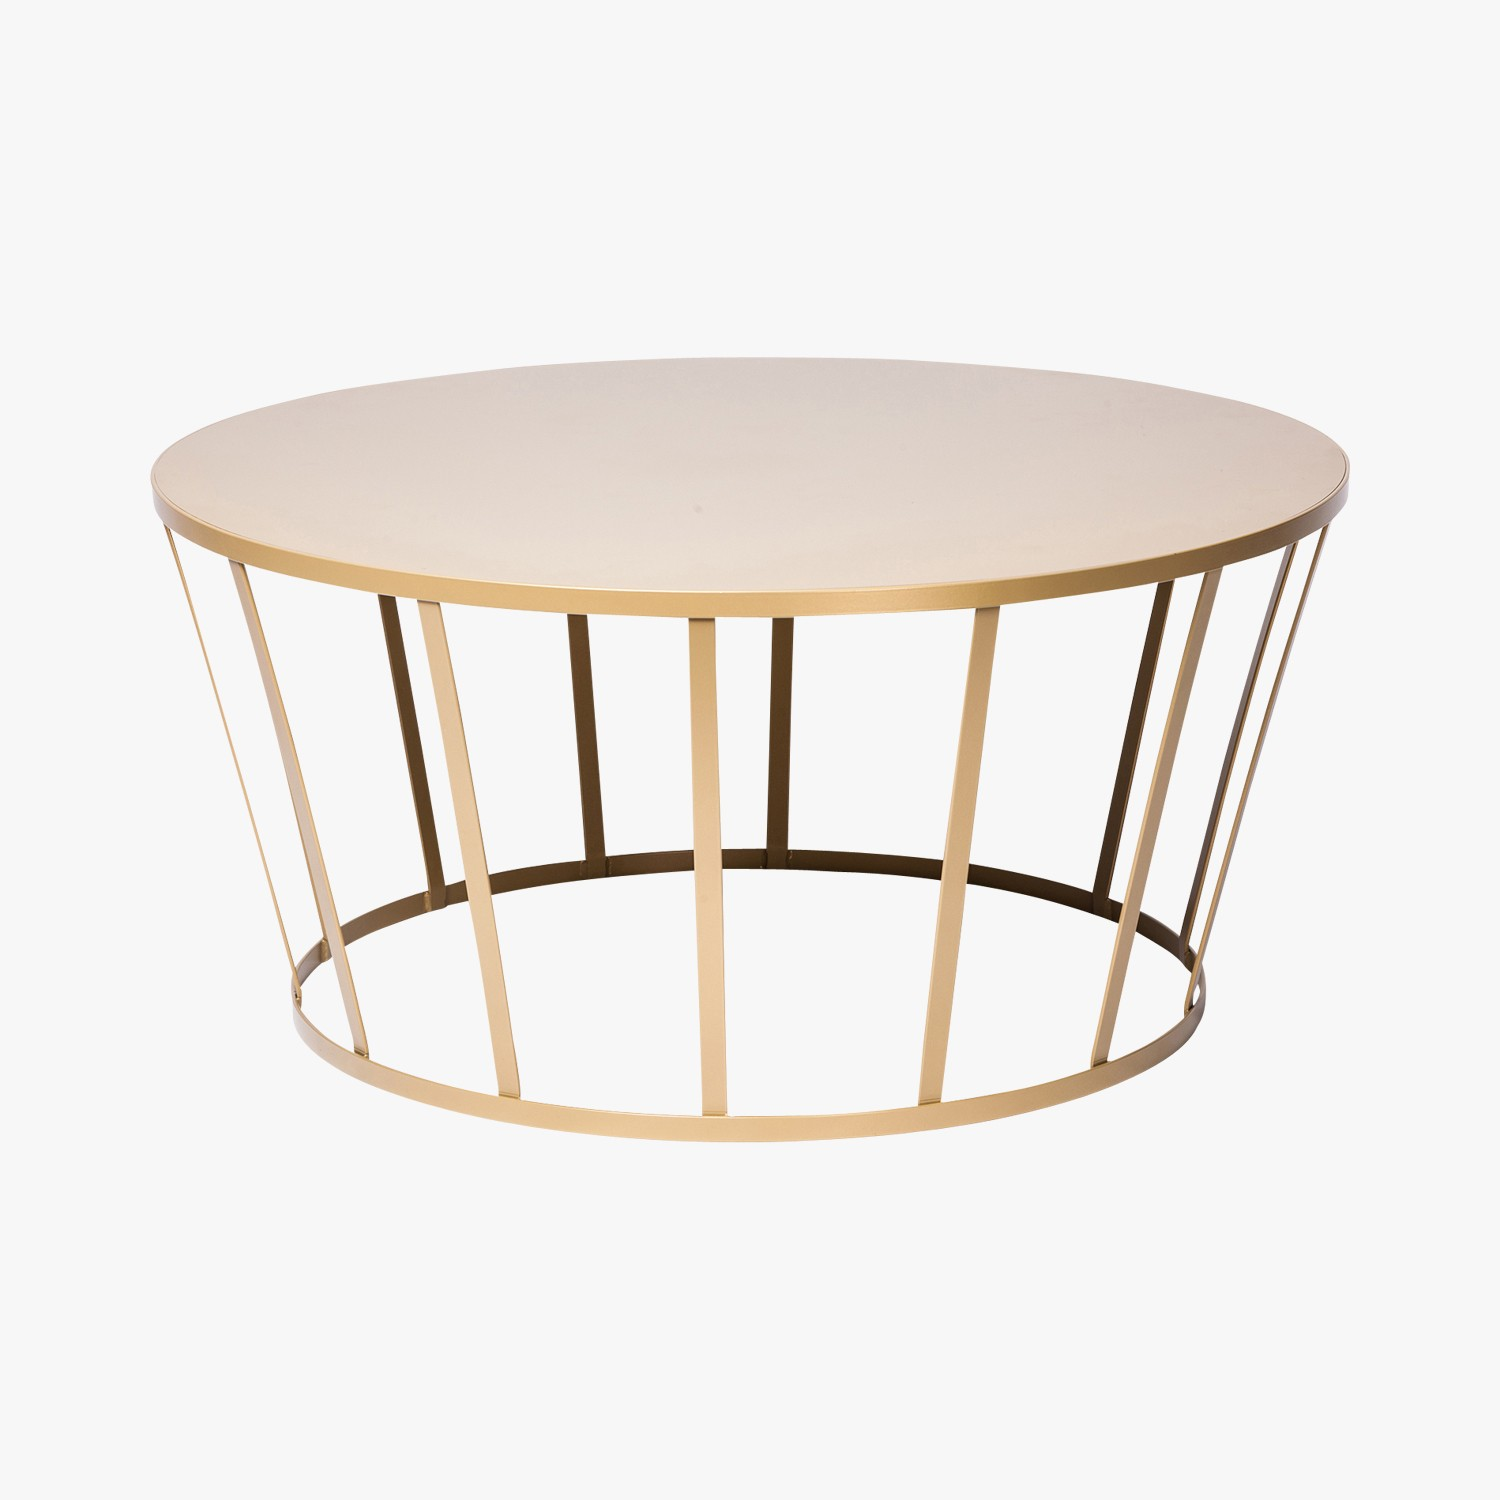 Renover une table basse en verre mobilier design - Table italienne en verre ...